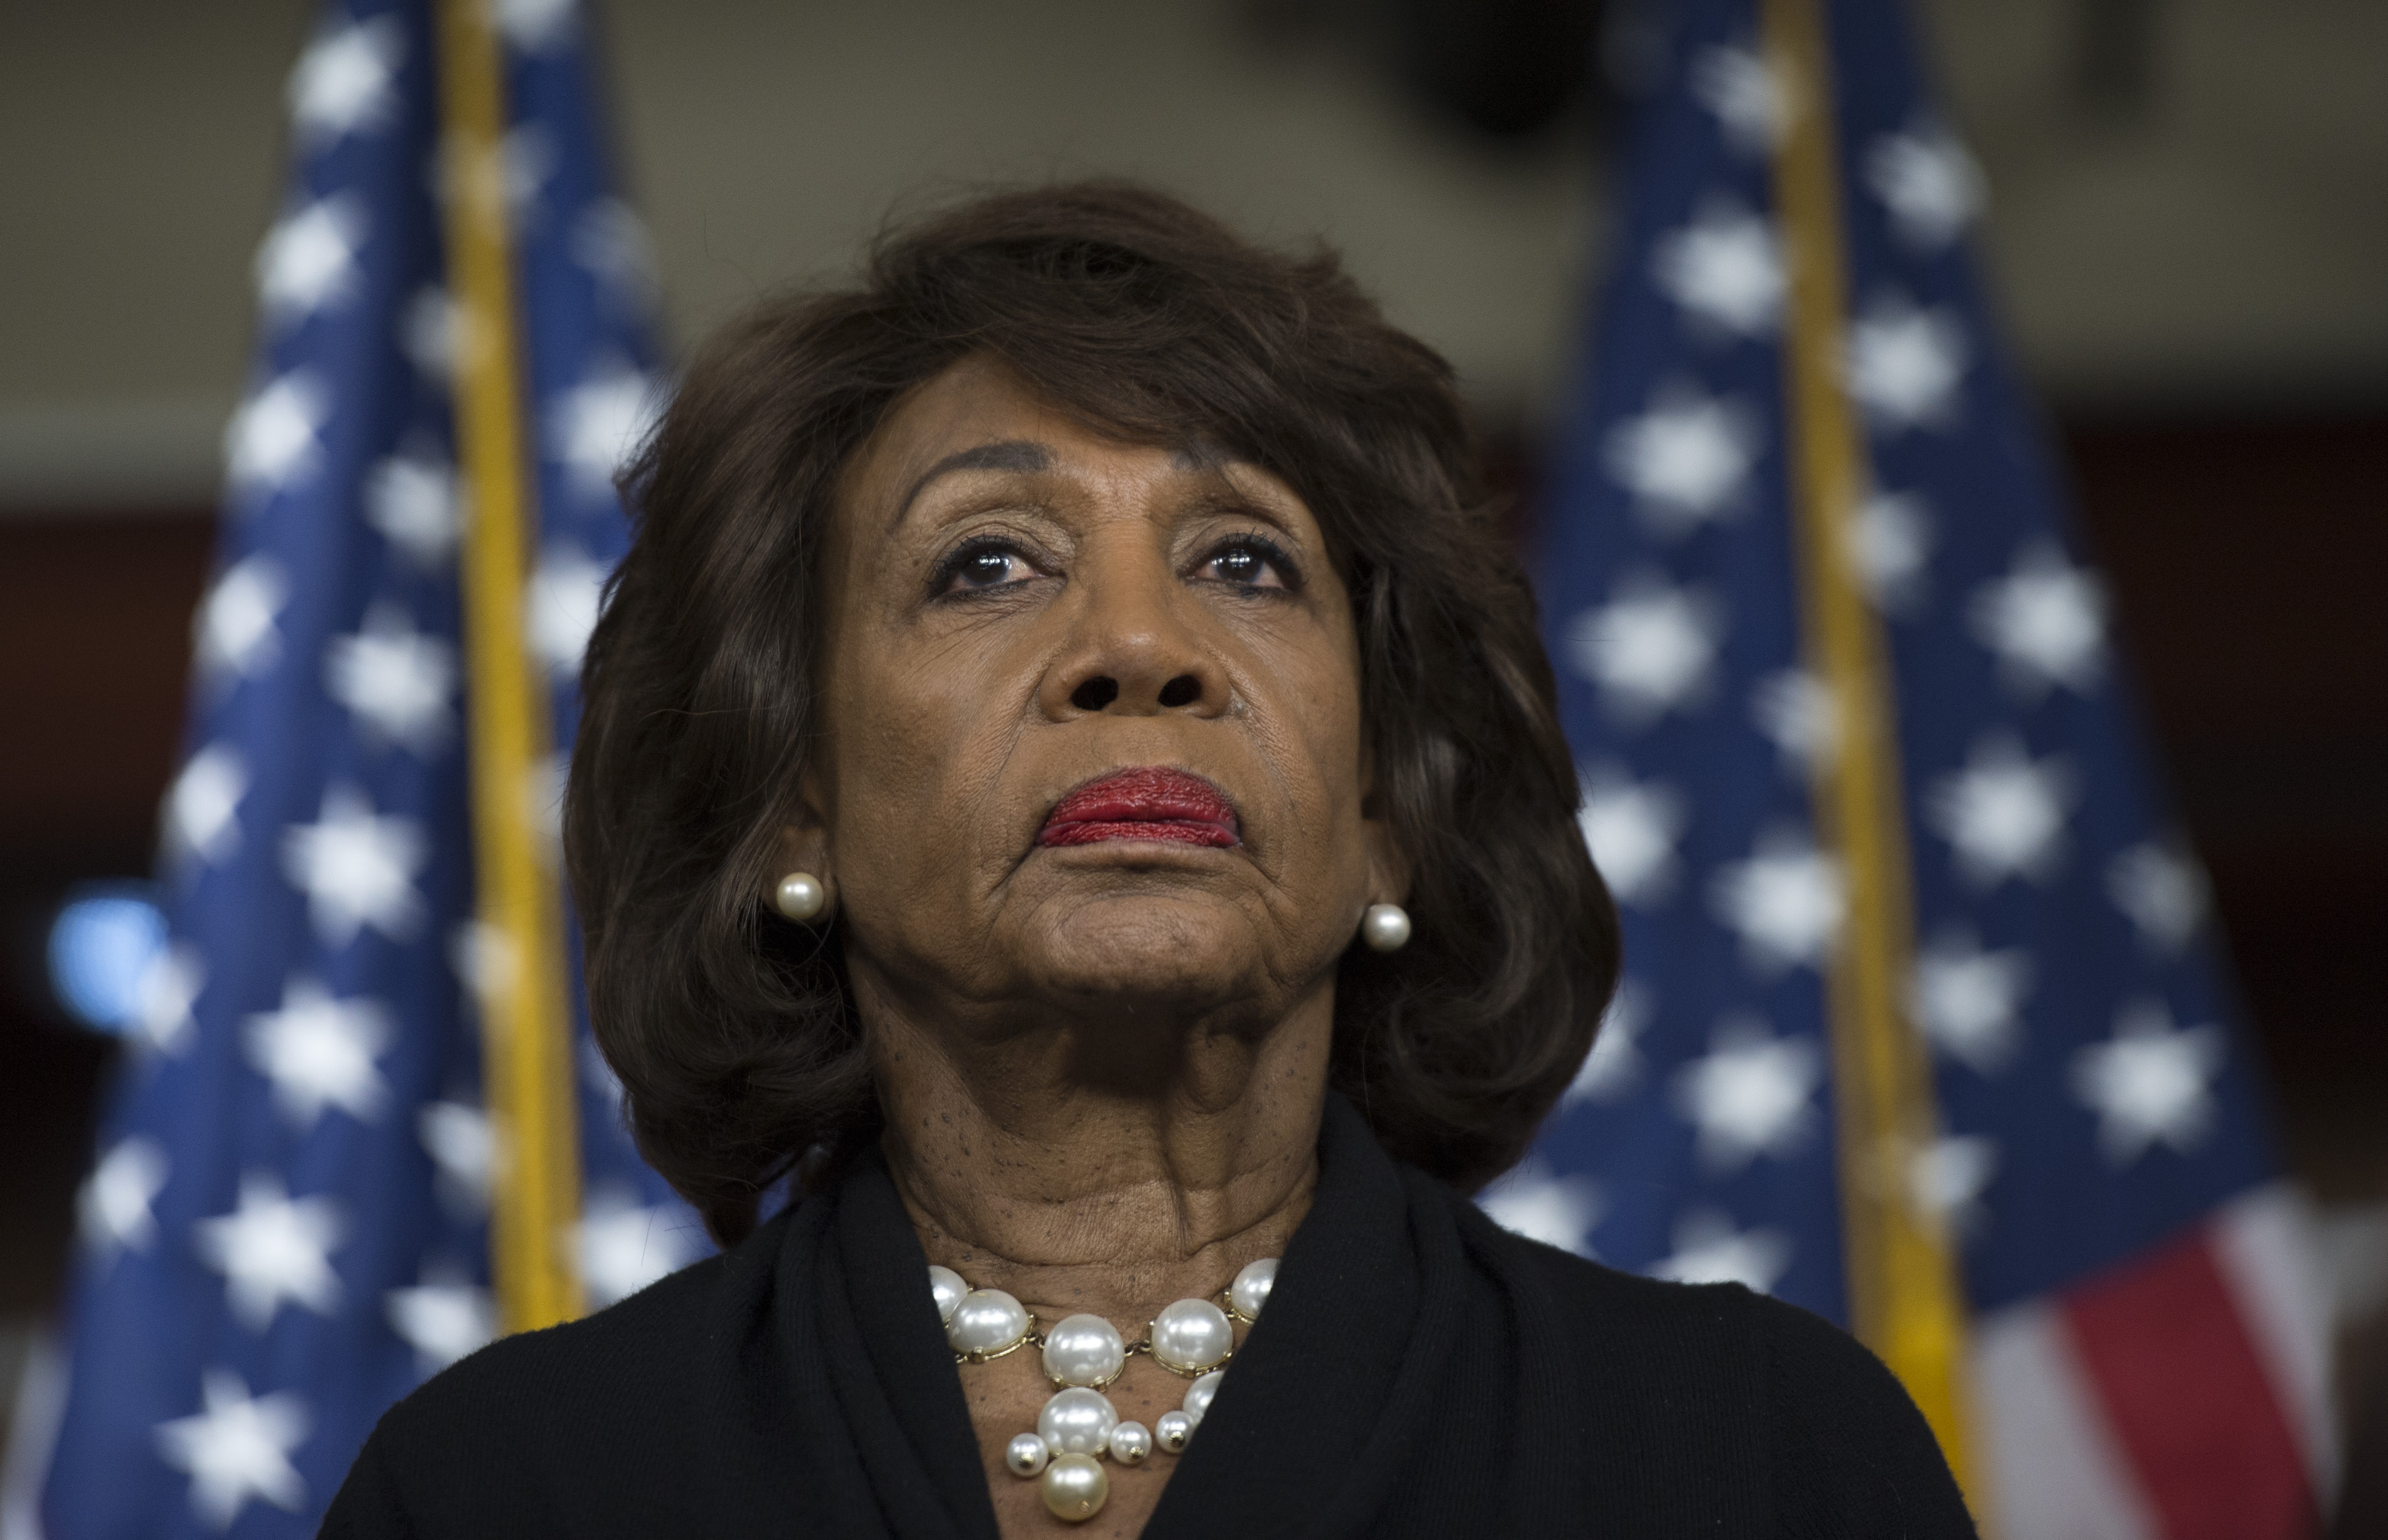 US Representative Maxine Waters (D-CA) looks on before speaking to reports regarding the Russia investigation on Capitol Hill in Washington, DC on January 9, 2018 (ANDREW CABALLERO-REYNOLDS/AFP/Getty Images)